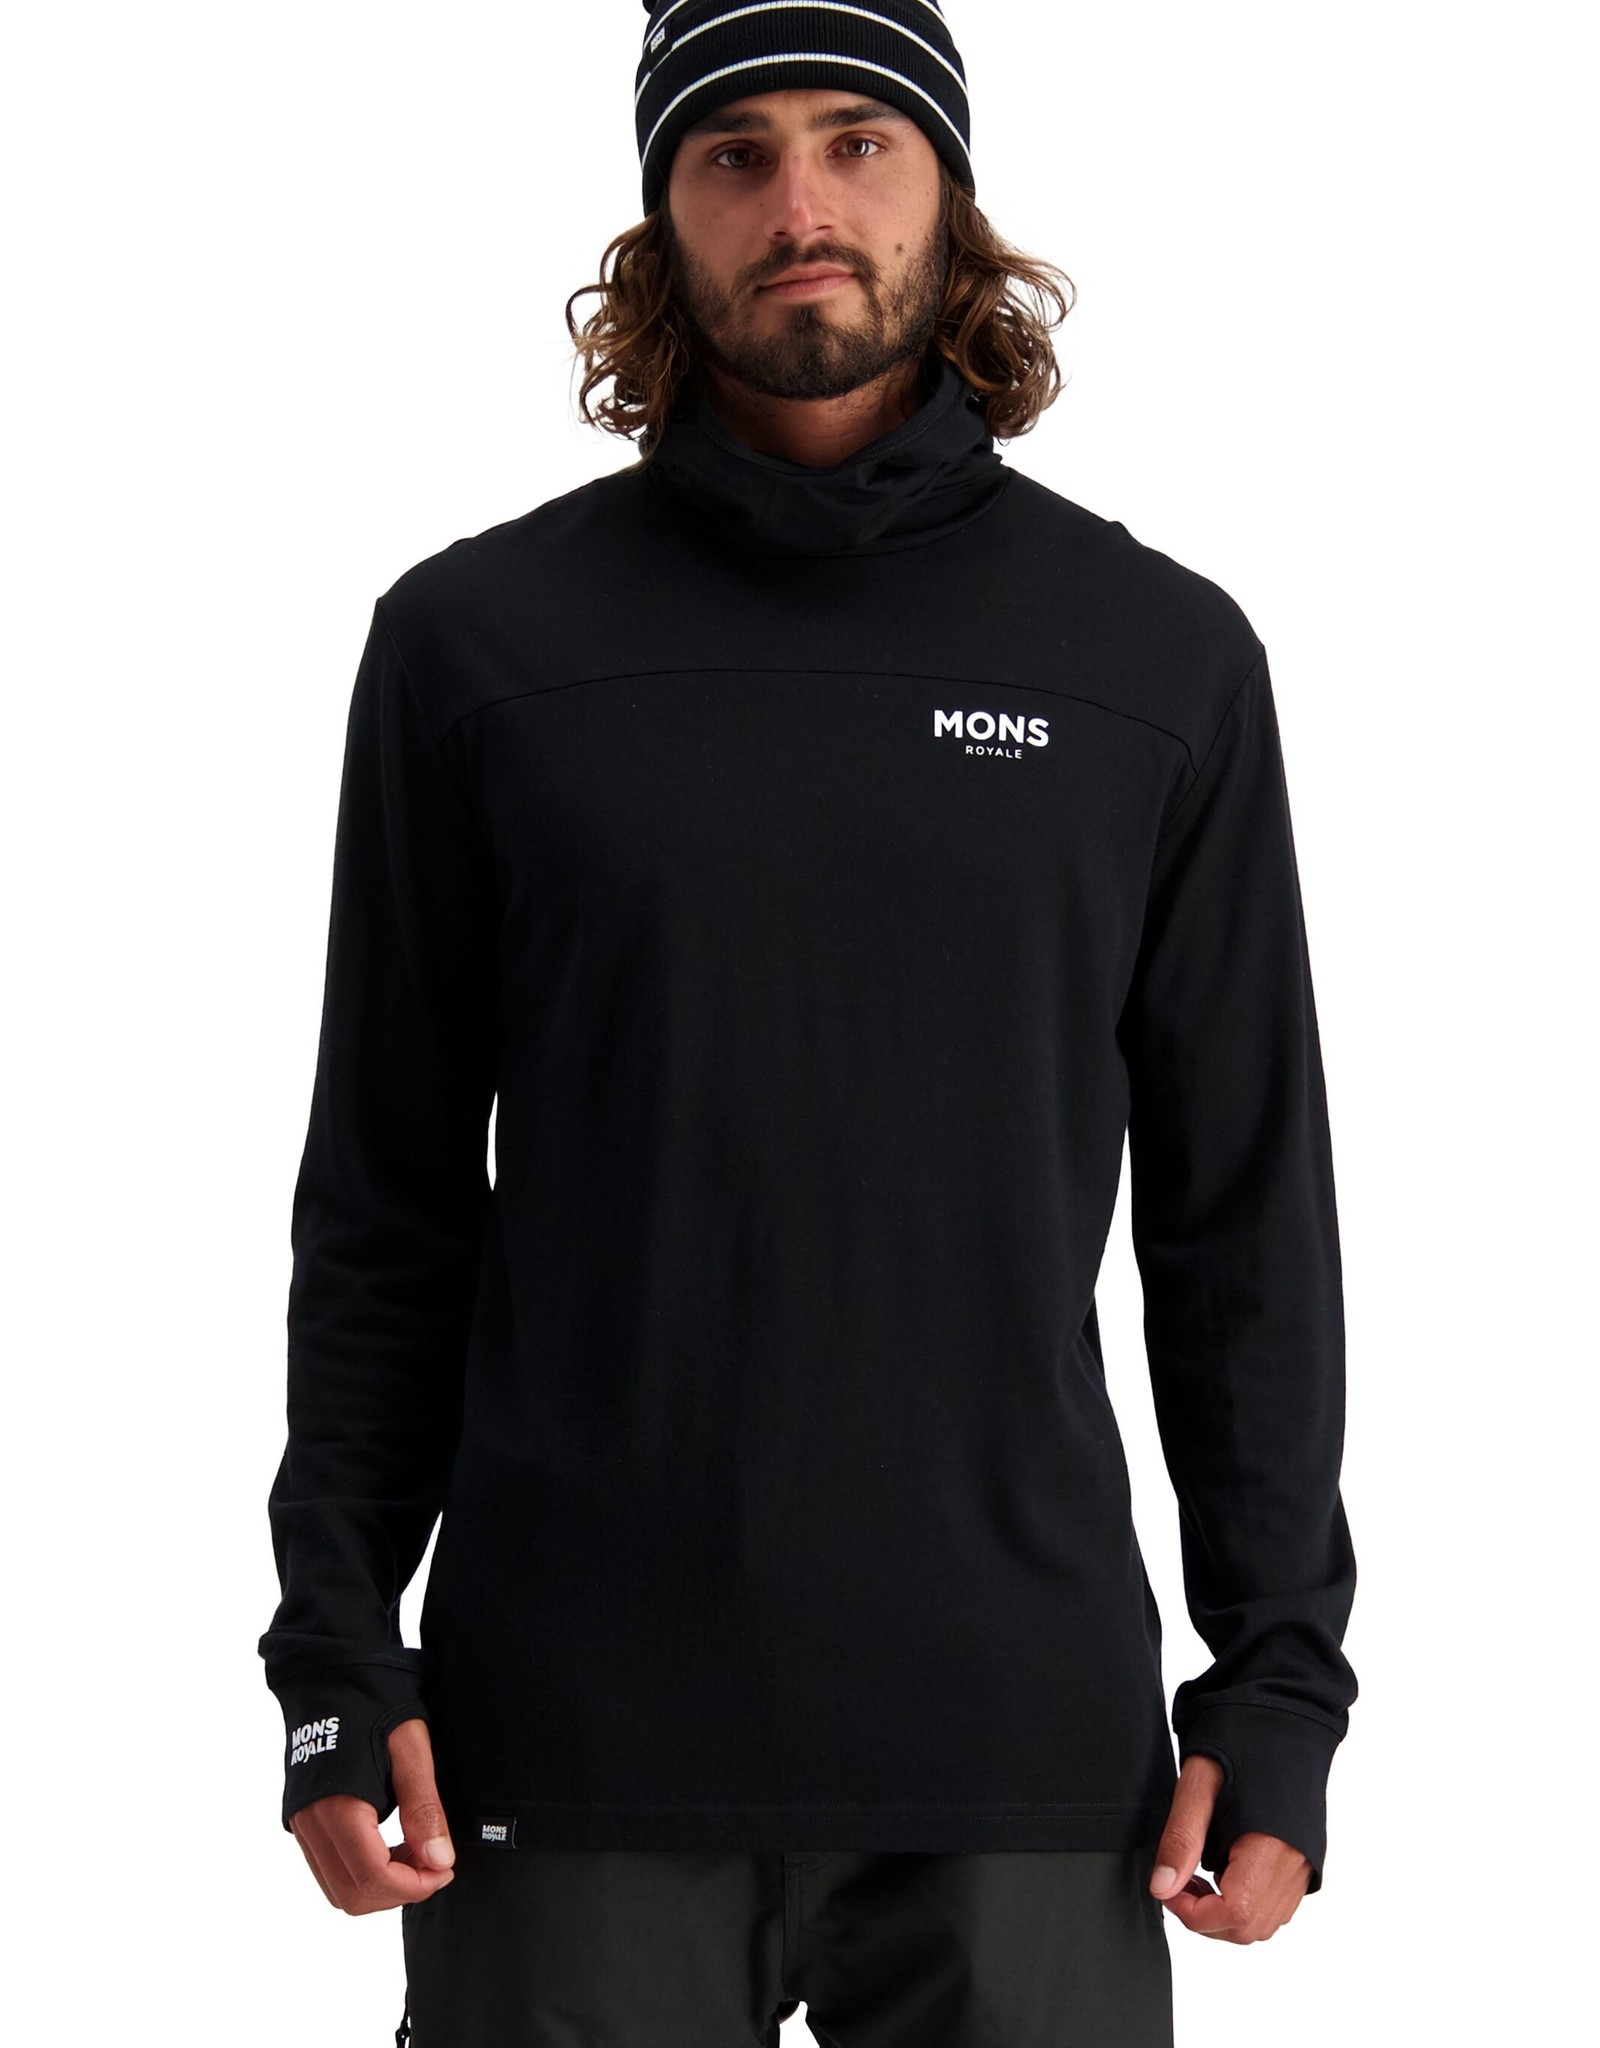 Mons Royale Mons Royale Yotei Powder Hood LS-Men's -W2020